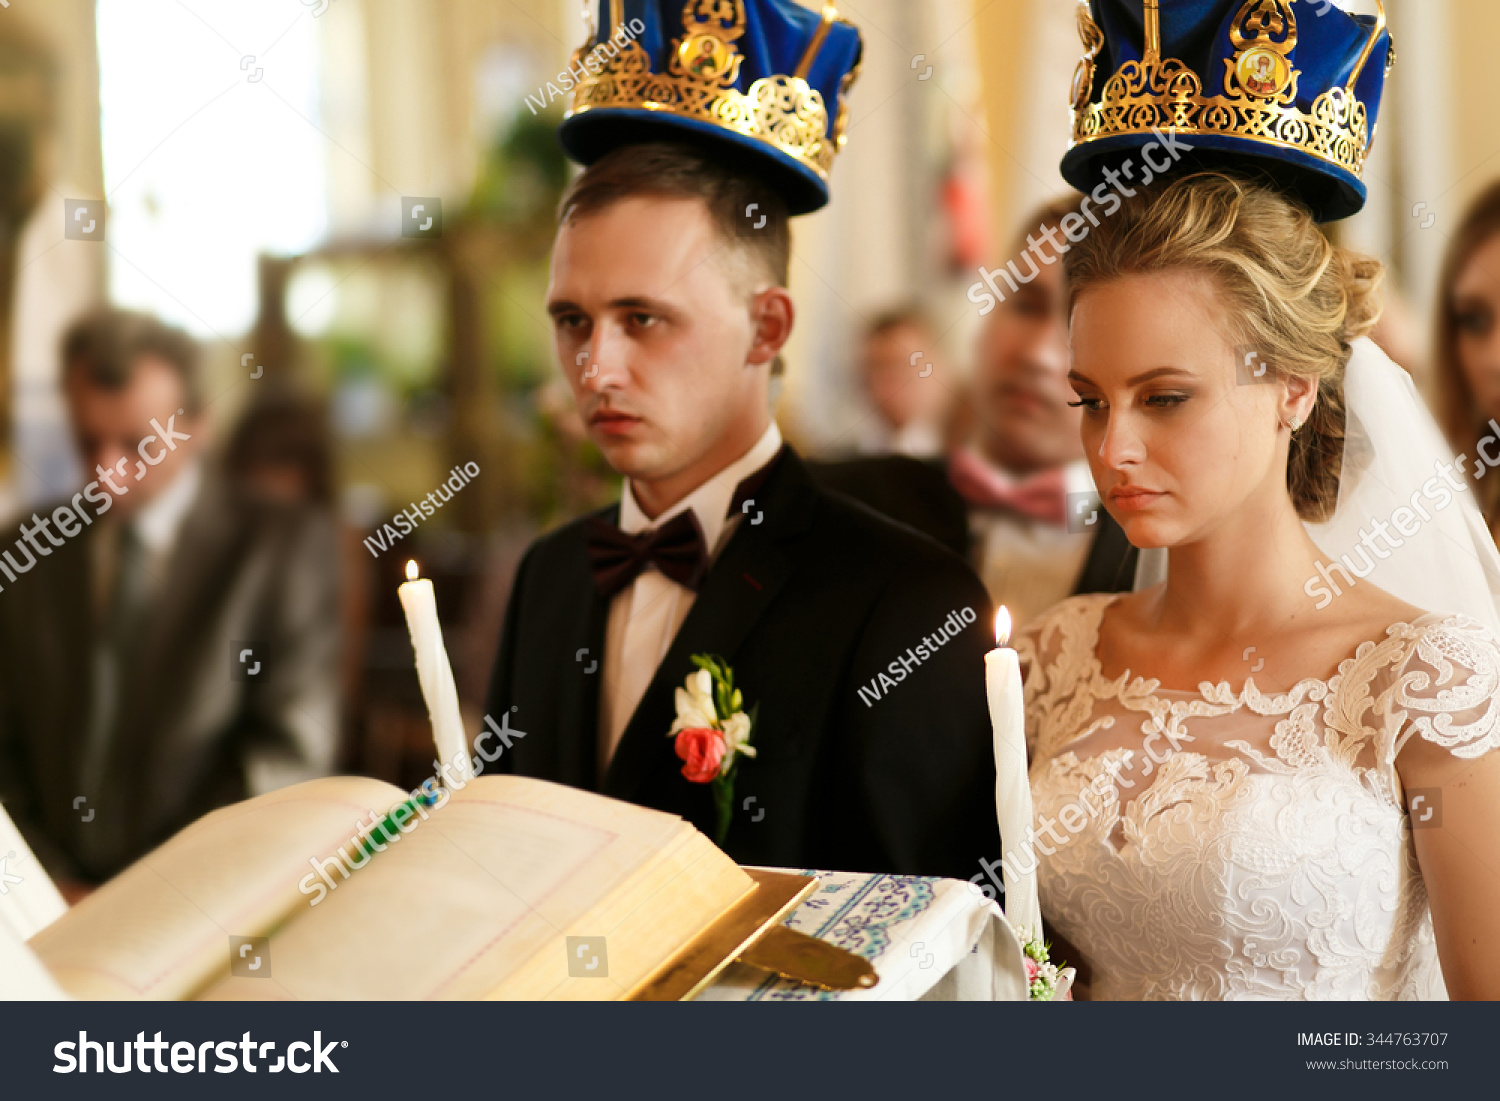 Wedding Church Bride Groom Greek Catholic Stock Photo